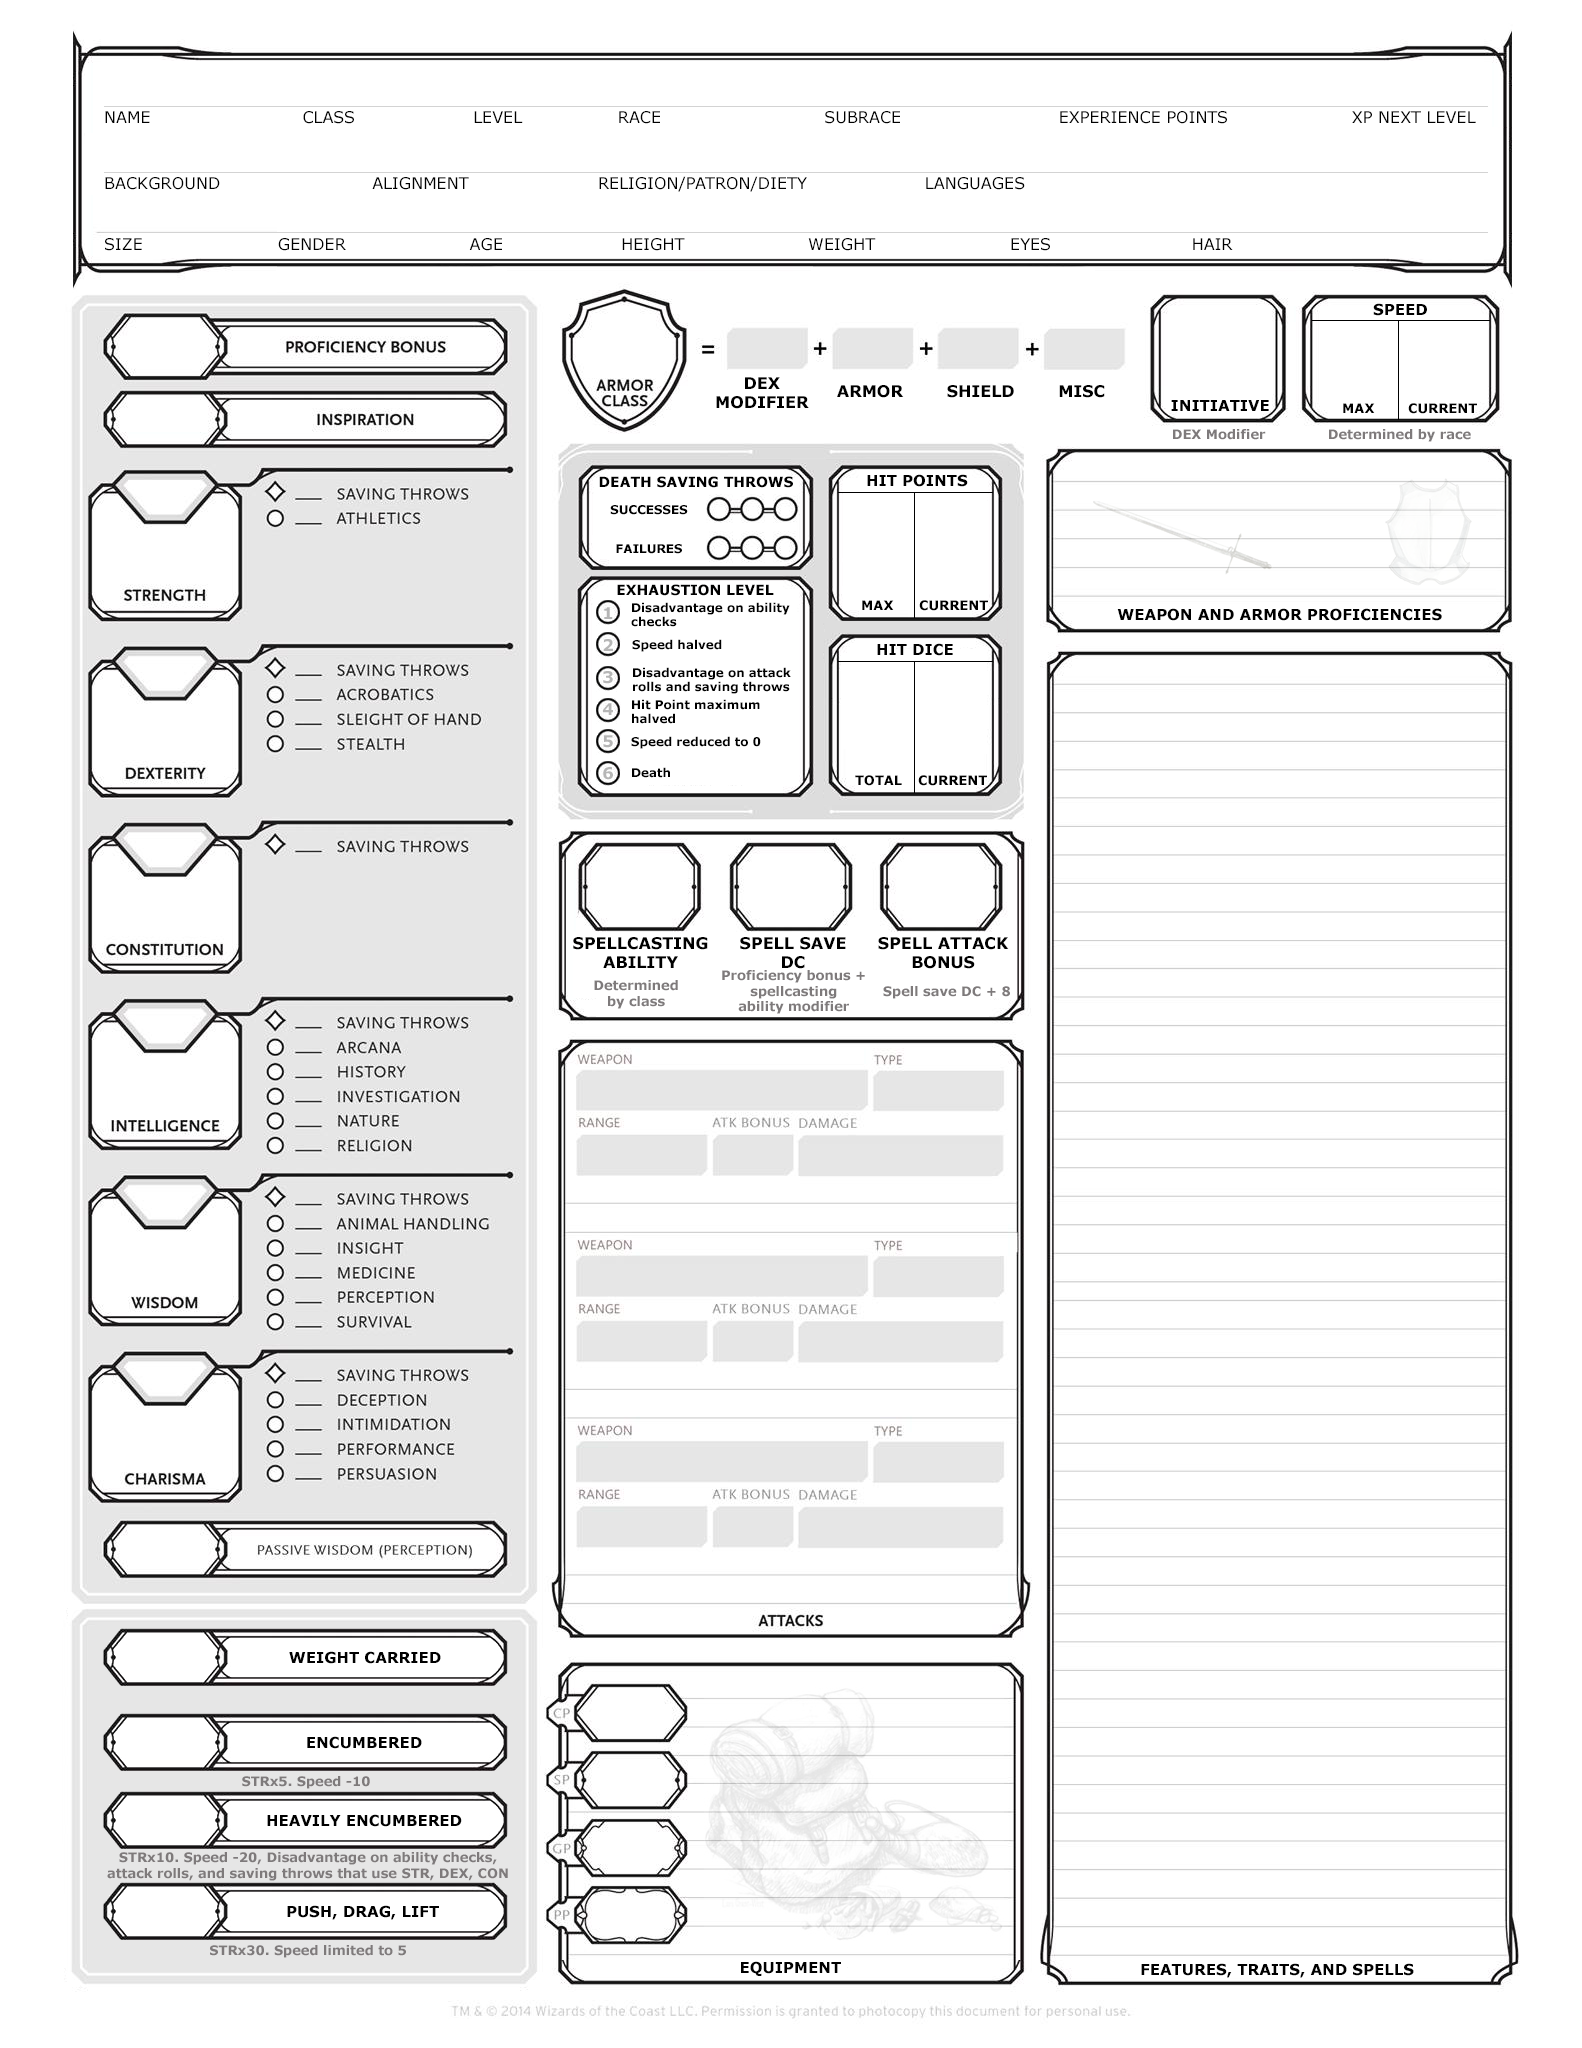 picture about 5e Character Sheet Printable named Blank Identity Sheet DND Options in just 2019 Rpg personality